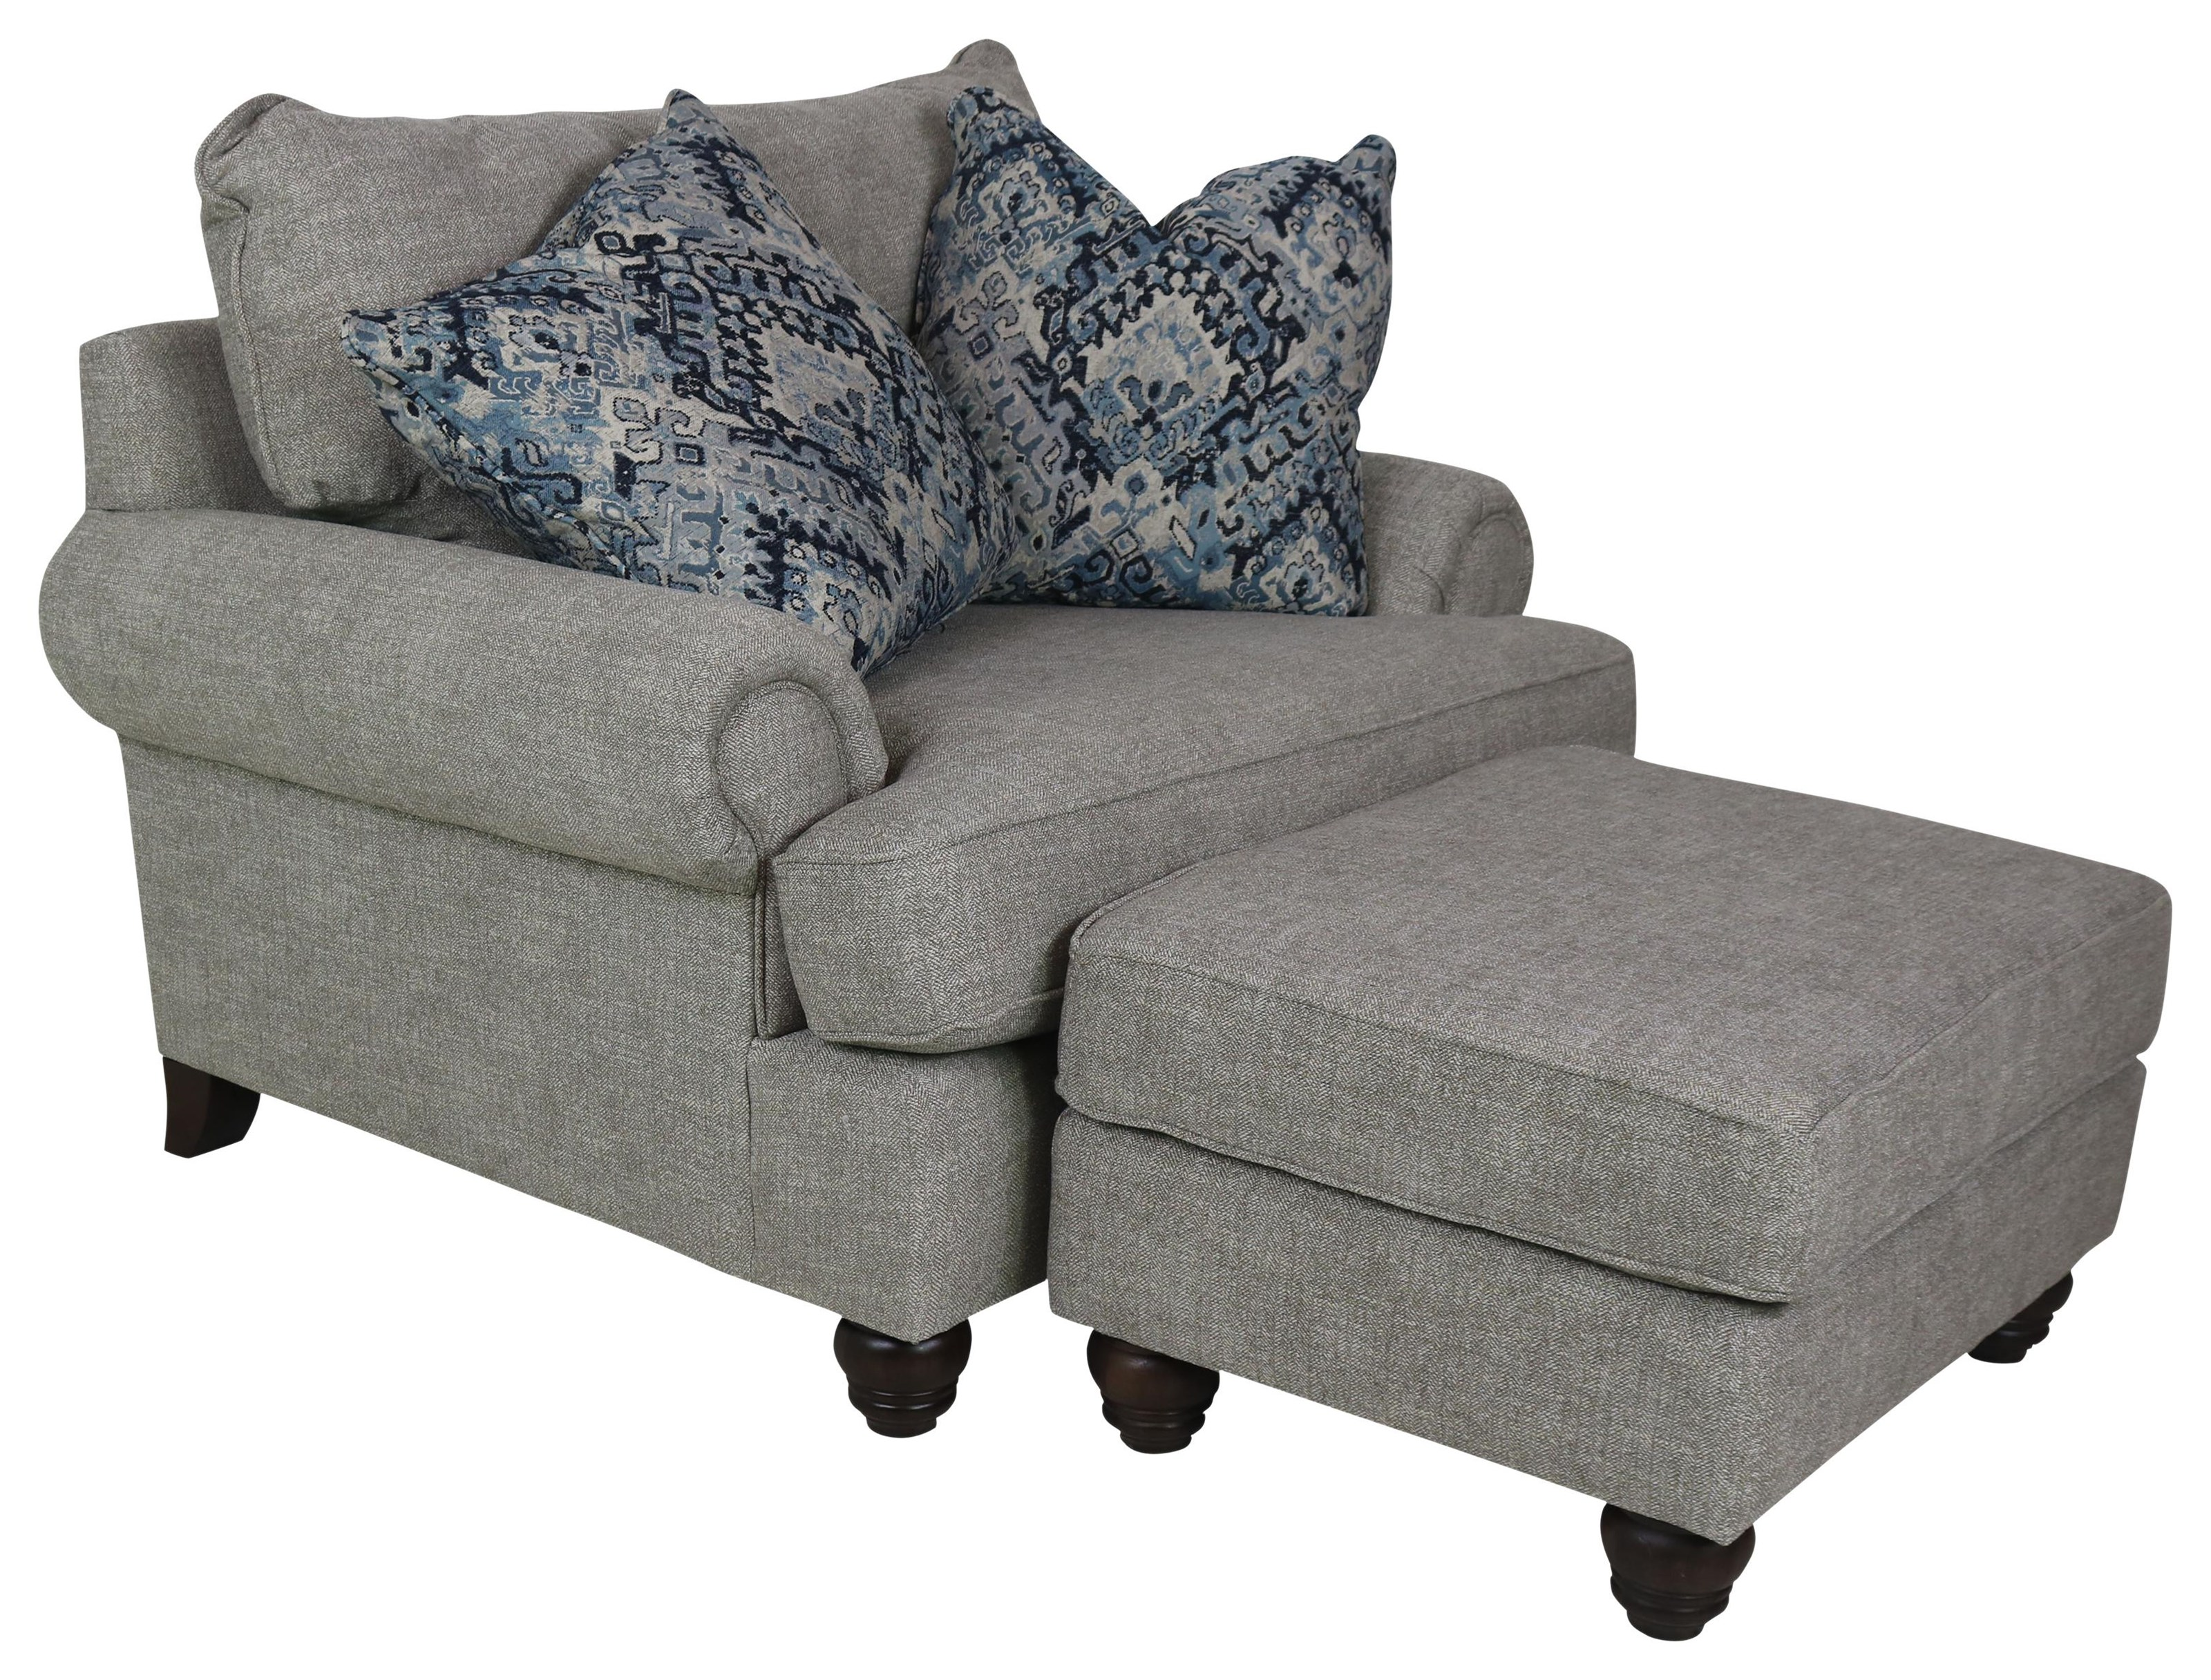 797050BD Chair & Half with Ottoman by Cozi Life Upholstery at Sprintz Furniture